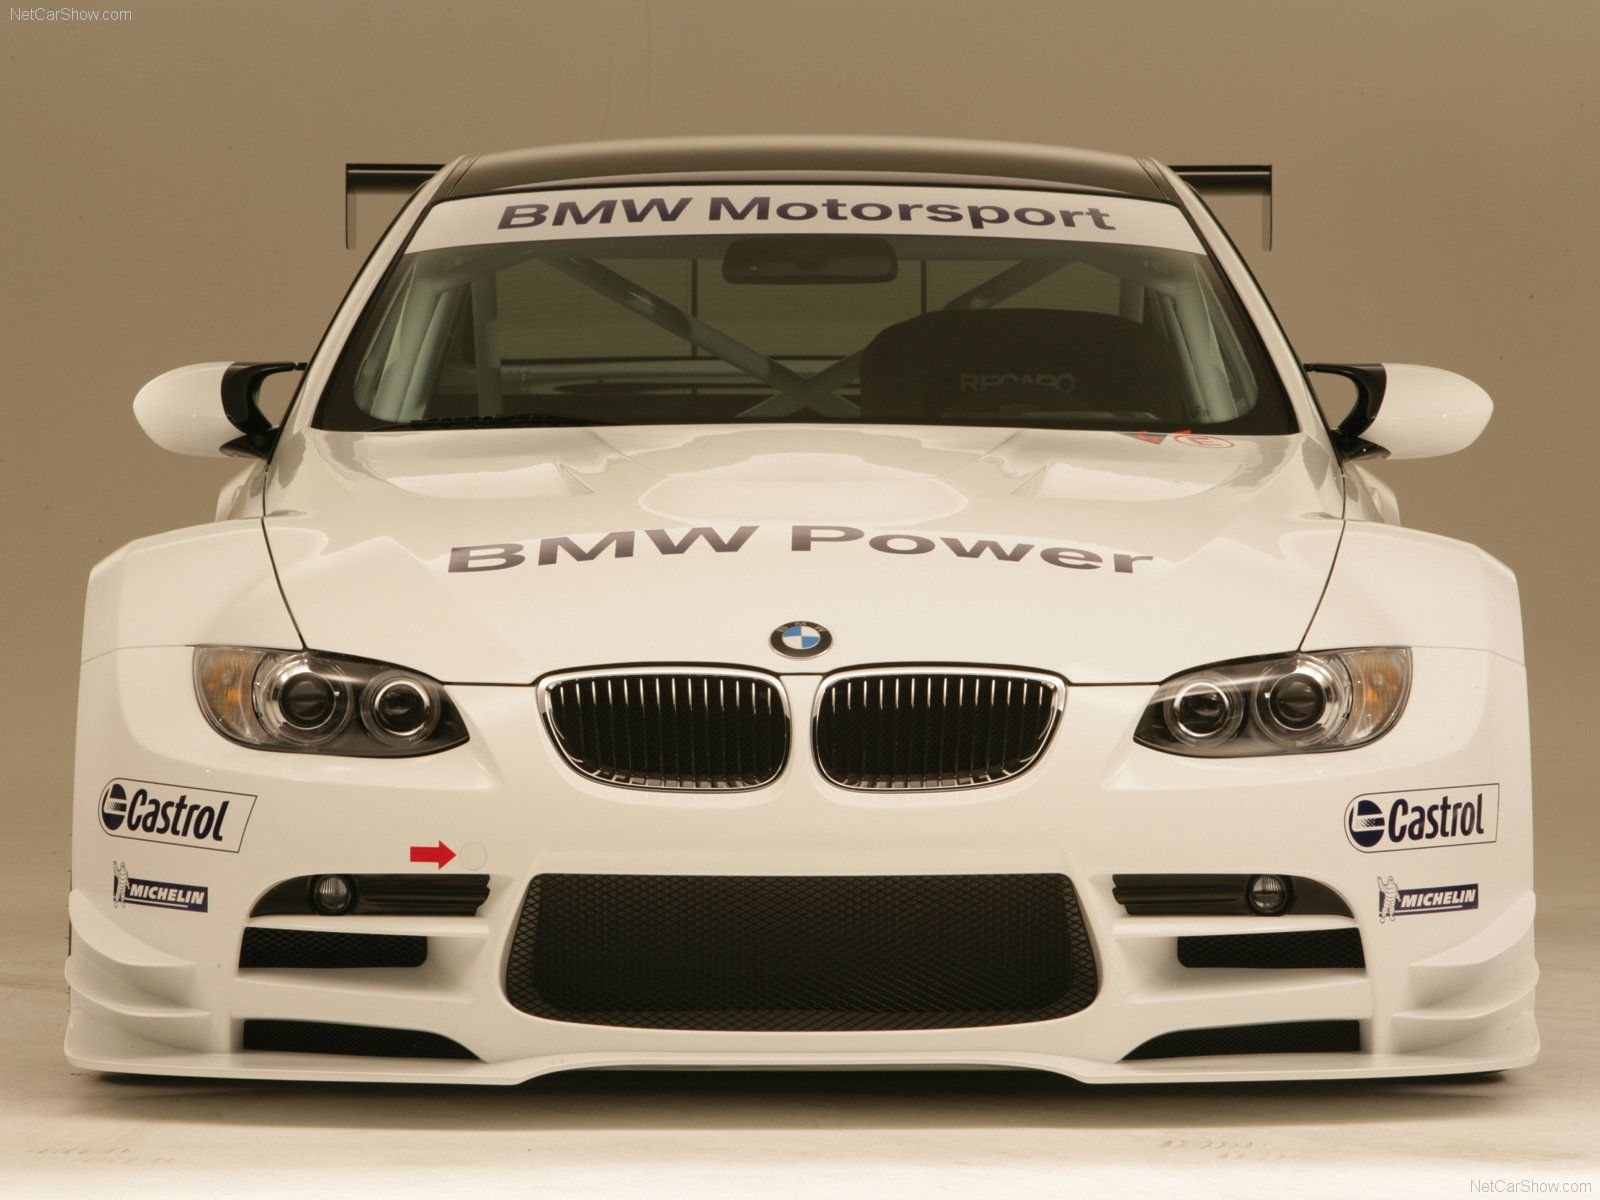 Bmw m3 race car check out these bimmers http